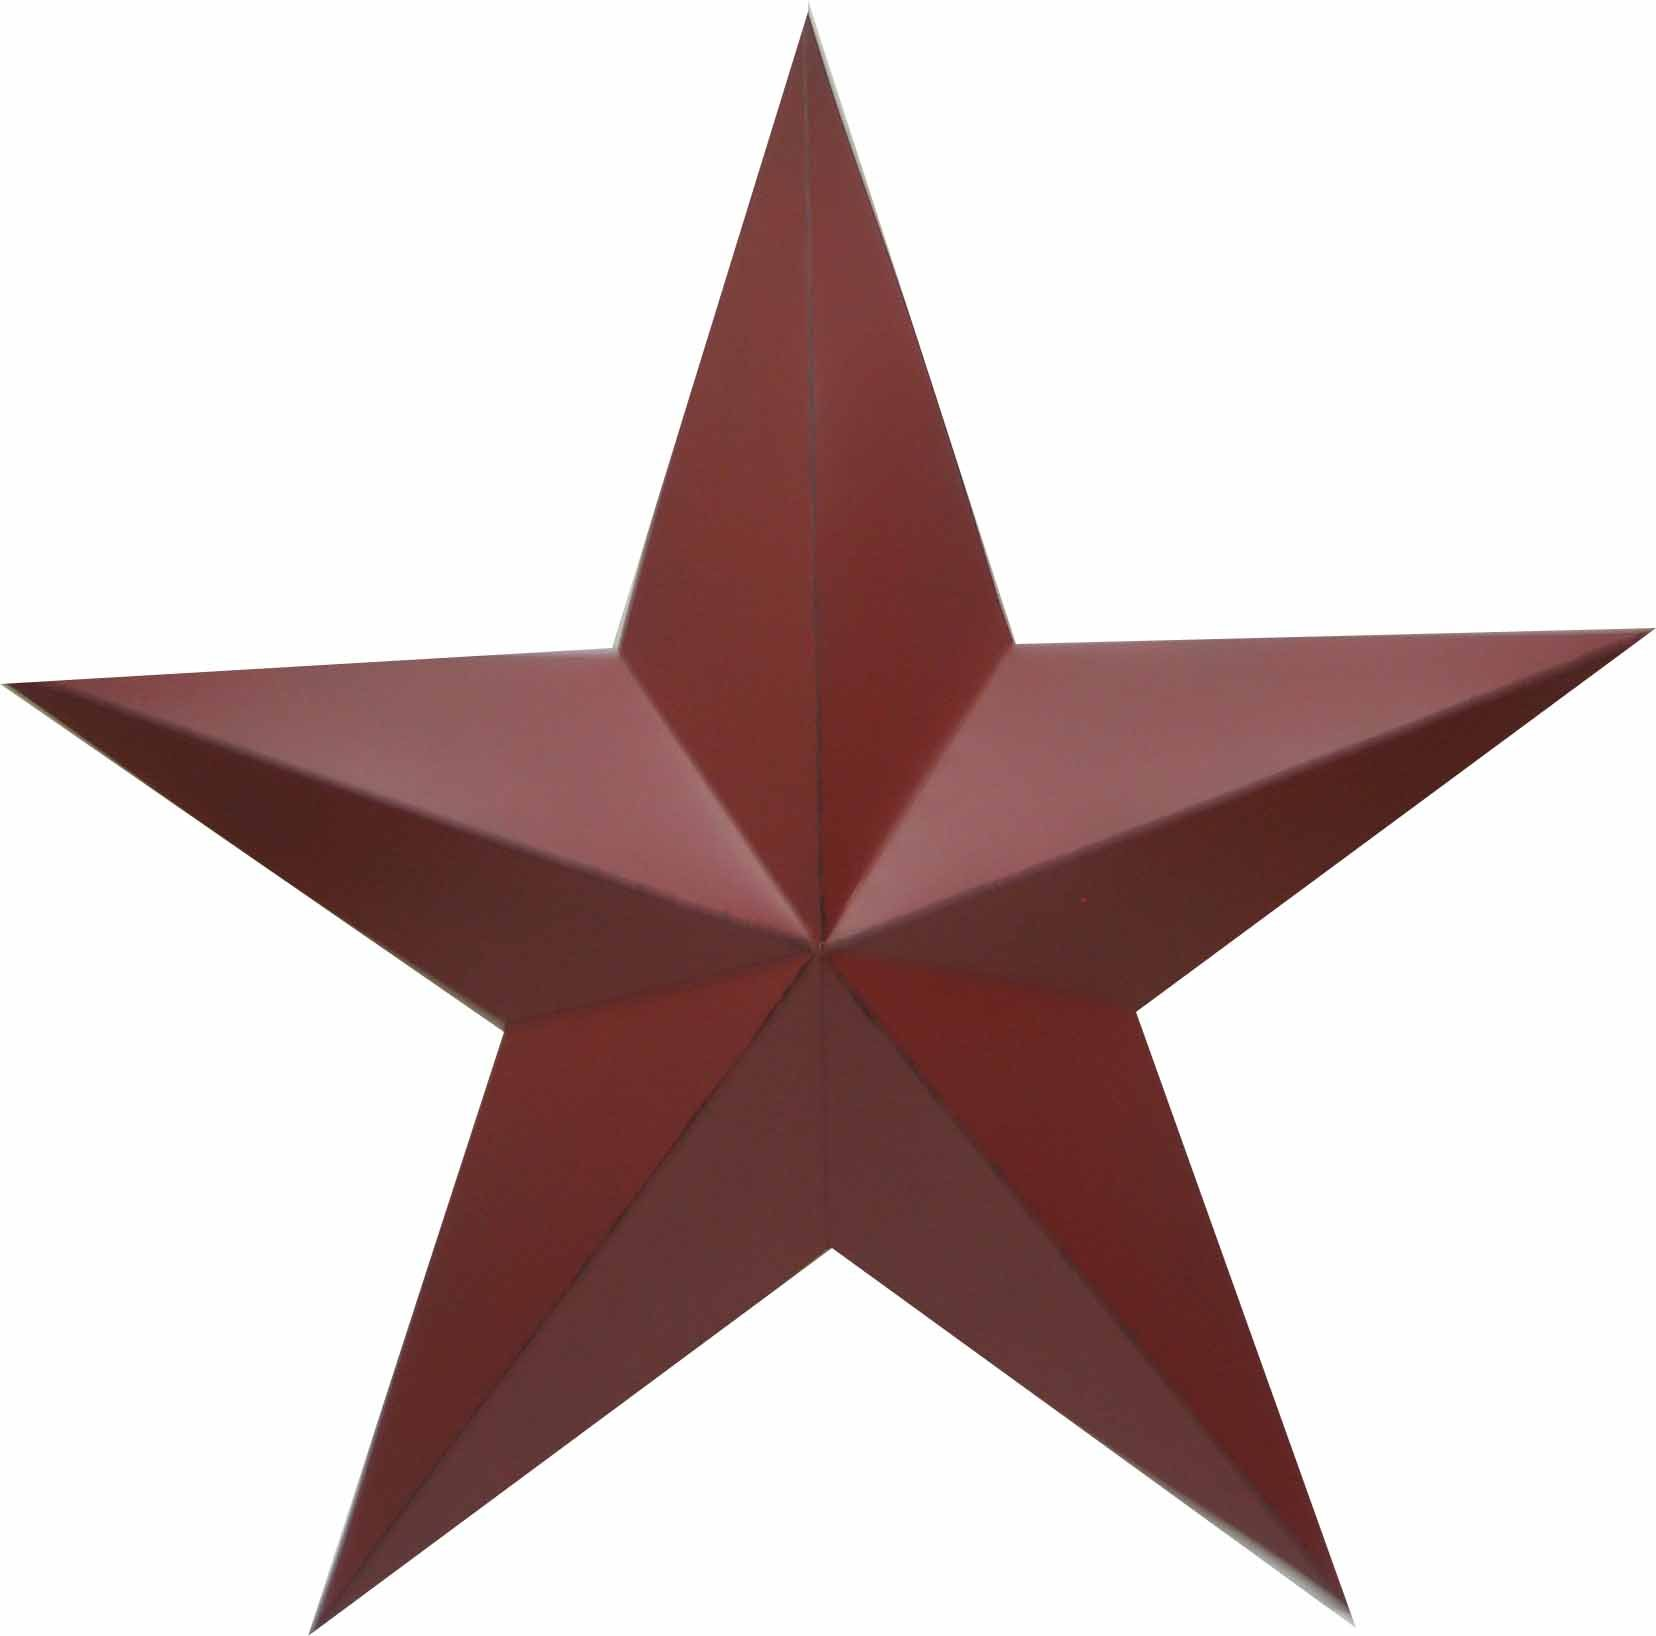 Craft Outlet Antique Star Wall Decor, 36-Inch, Barn Red by Craft Outlet Inc